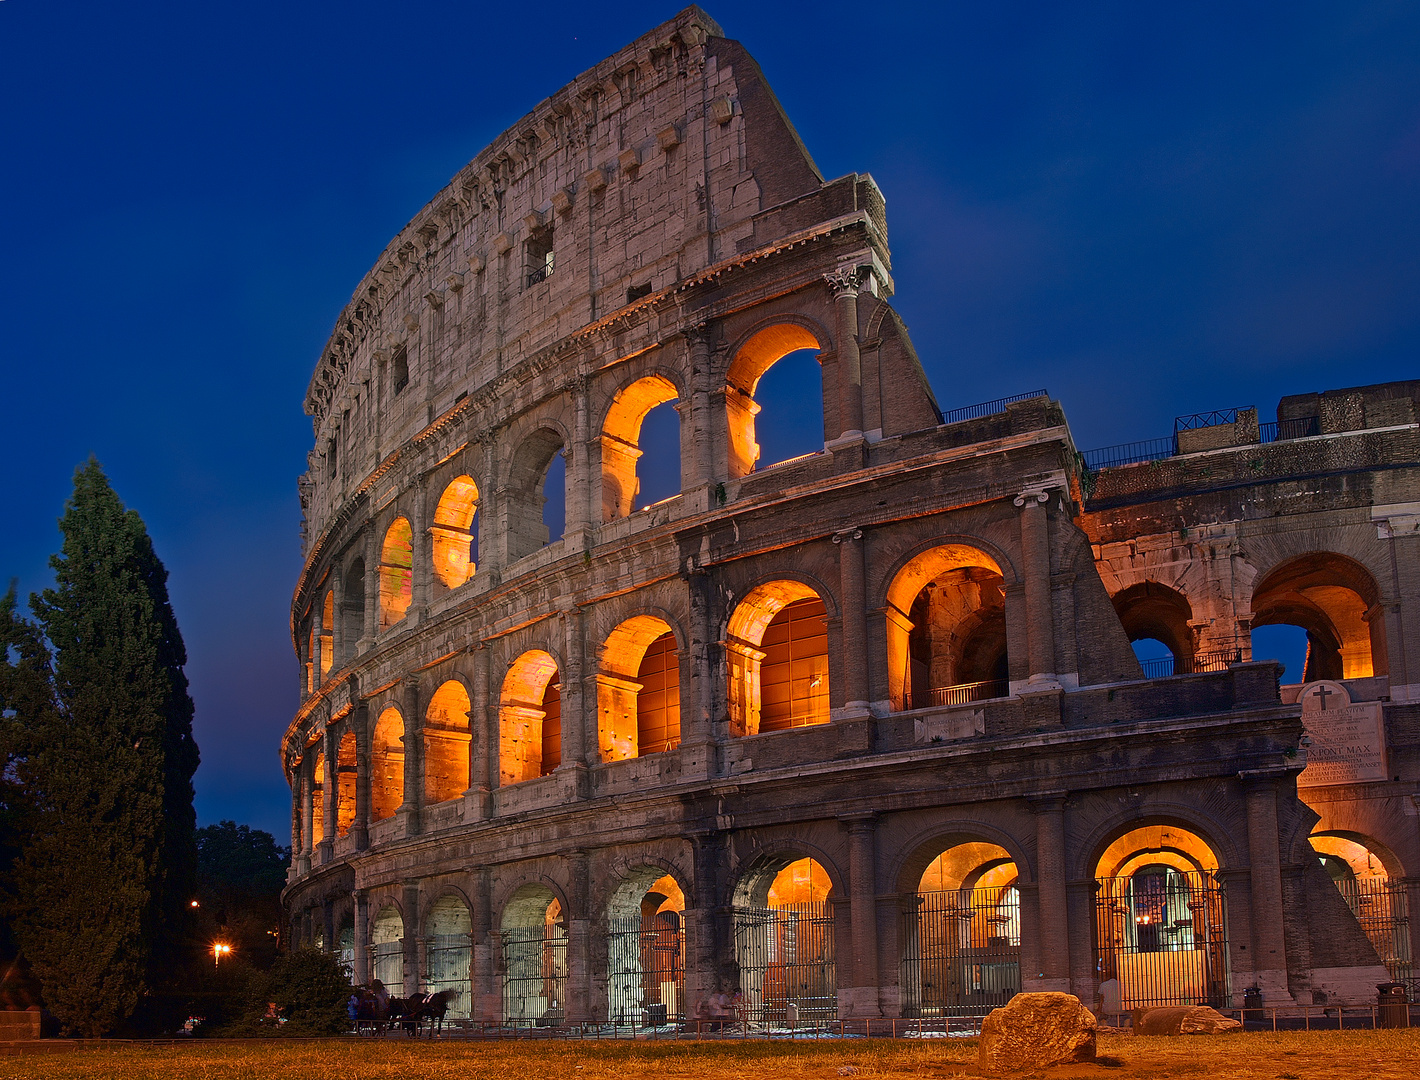 Colosseum by night #1